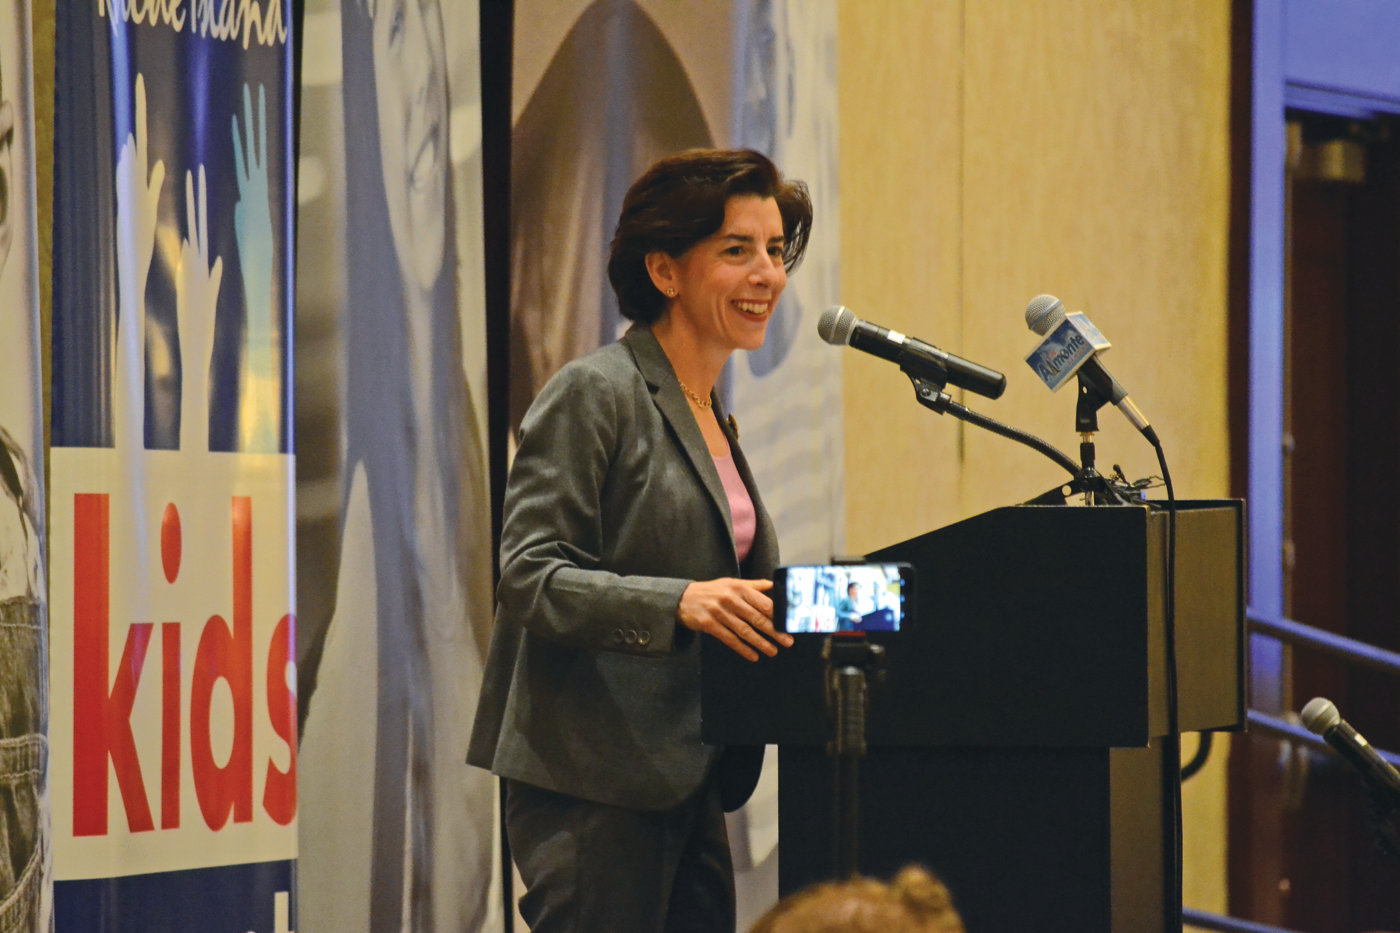 EXPANDING OPPORTUNITY: Governor Gina Raimondo had a clear message during her remarks on Monday: pass universal Pre-K for all kids in Rhode Island.